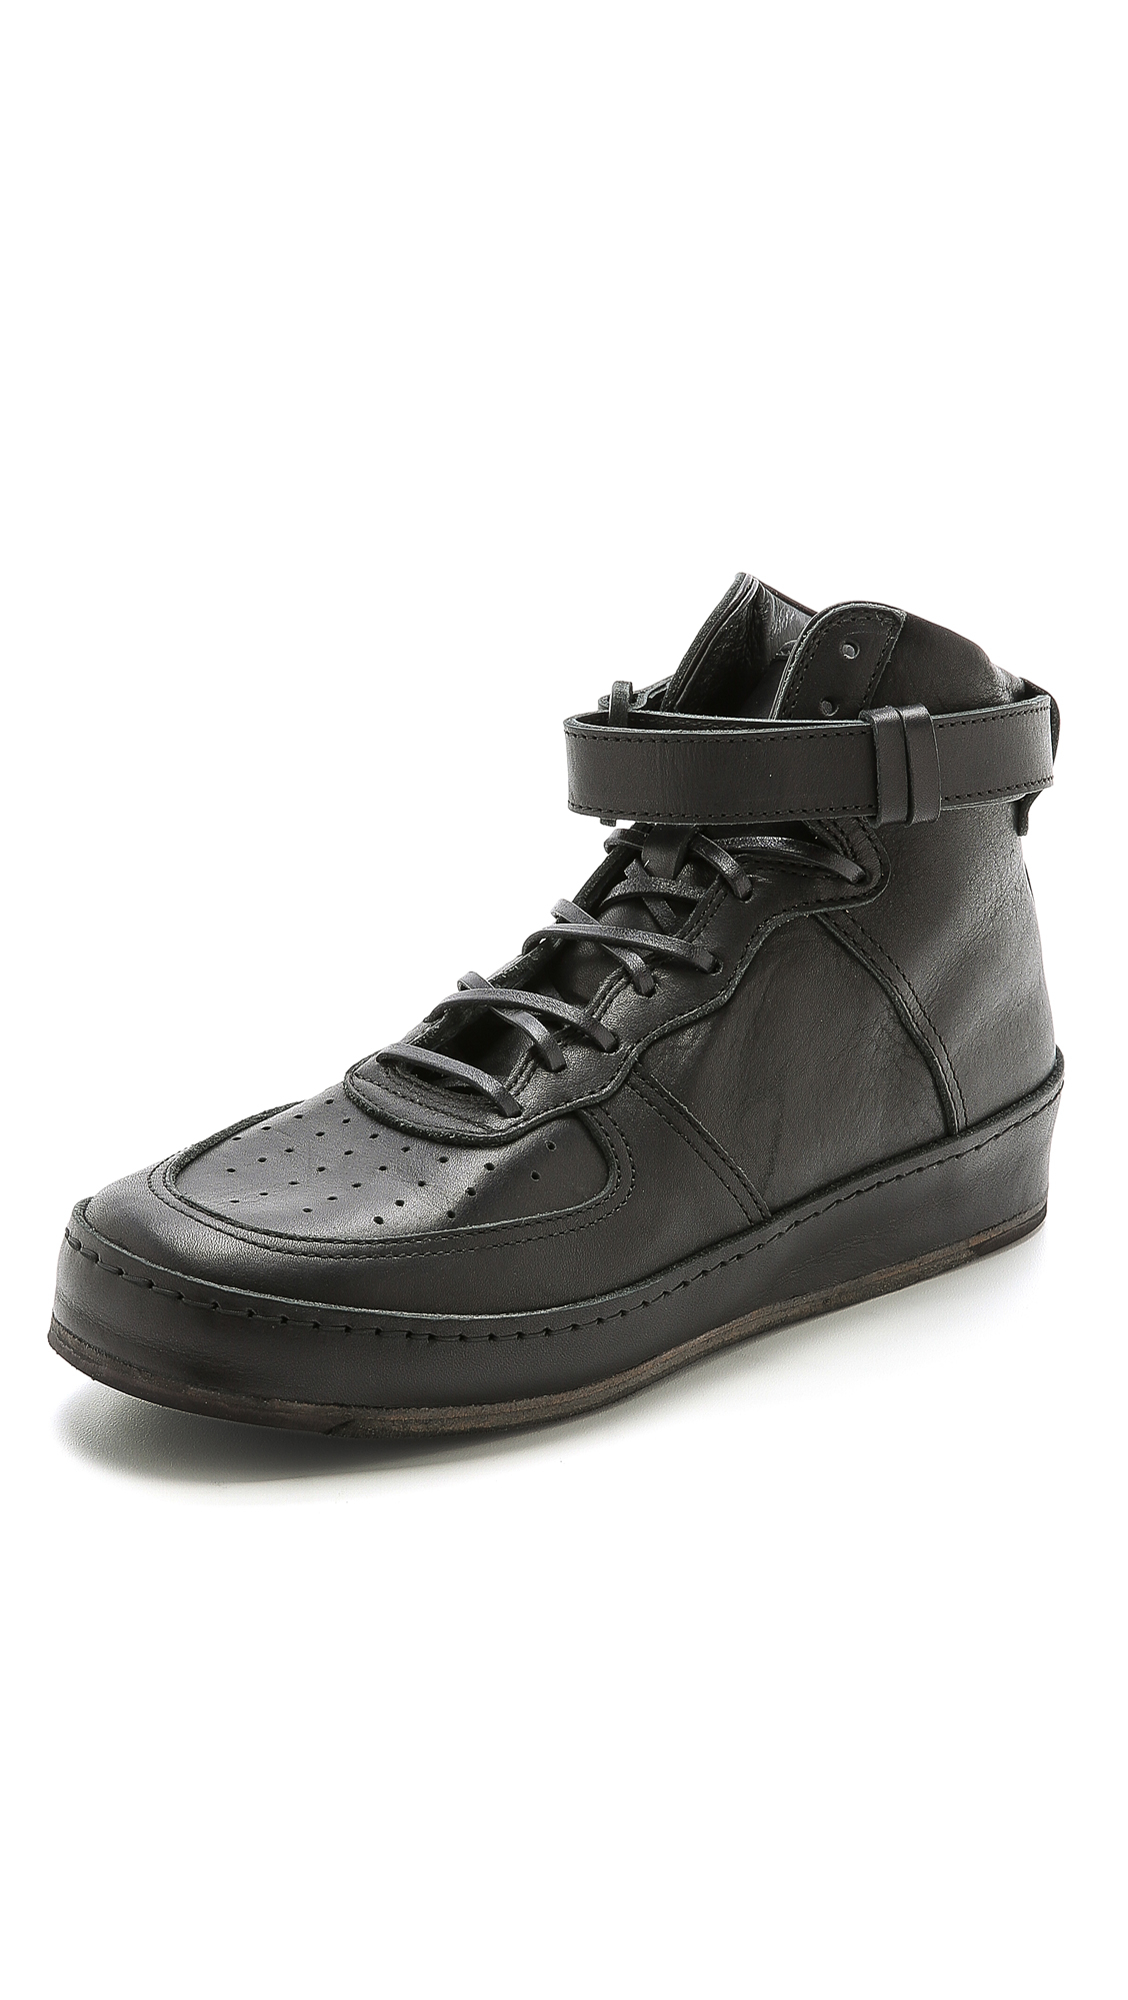 Black Manual Industrial Products 01 High-Top Sneakers HENDER SCHEME ndGaakFAx